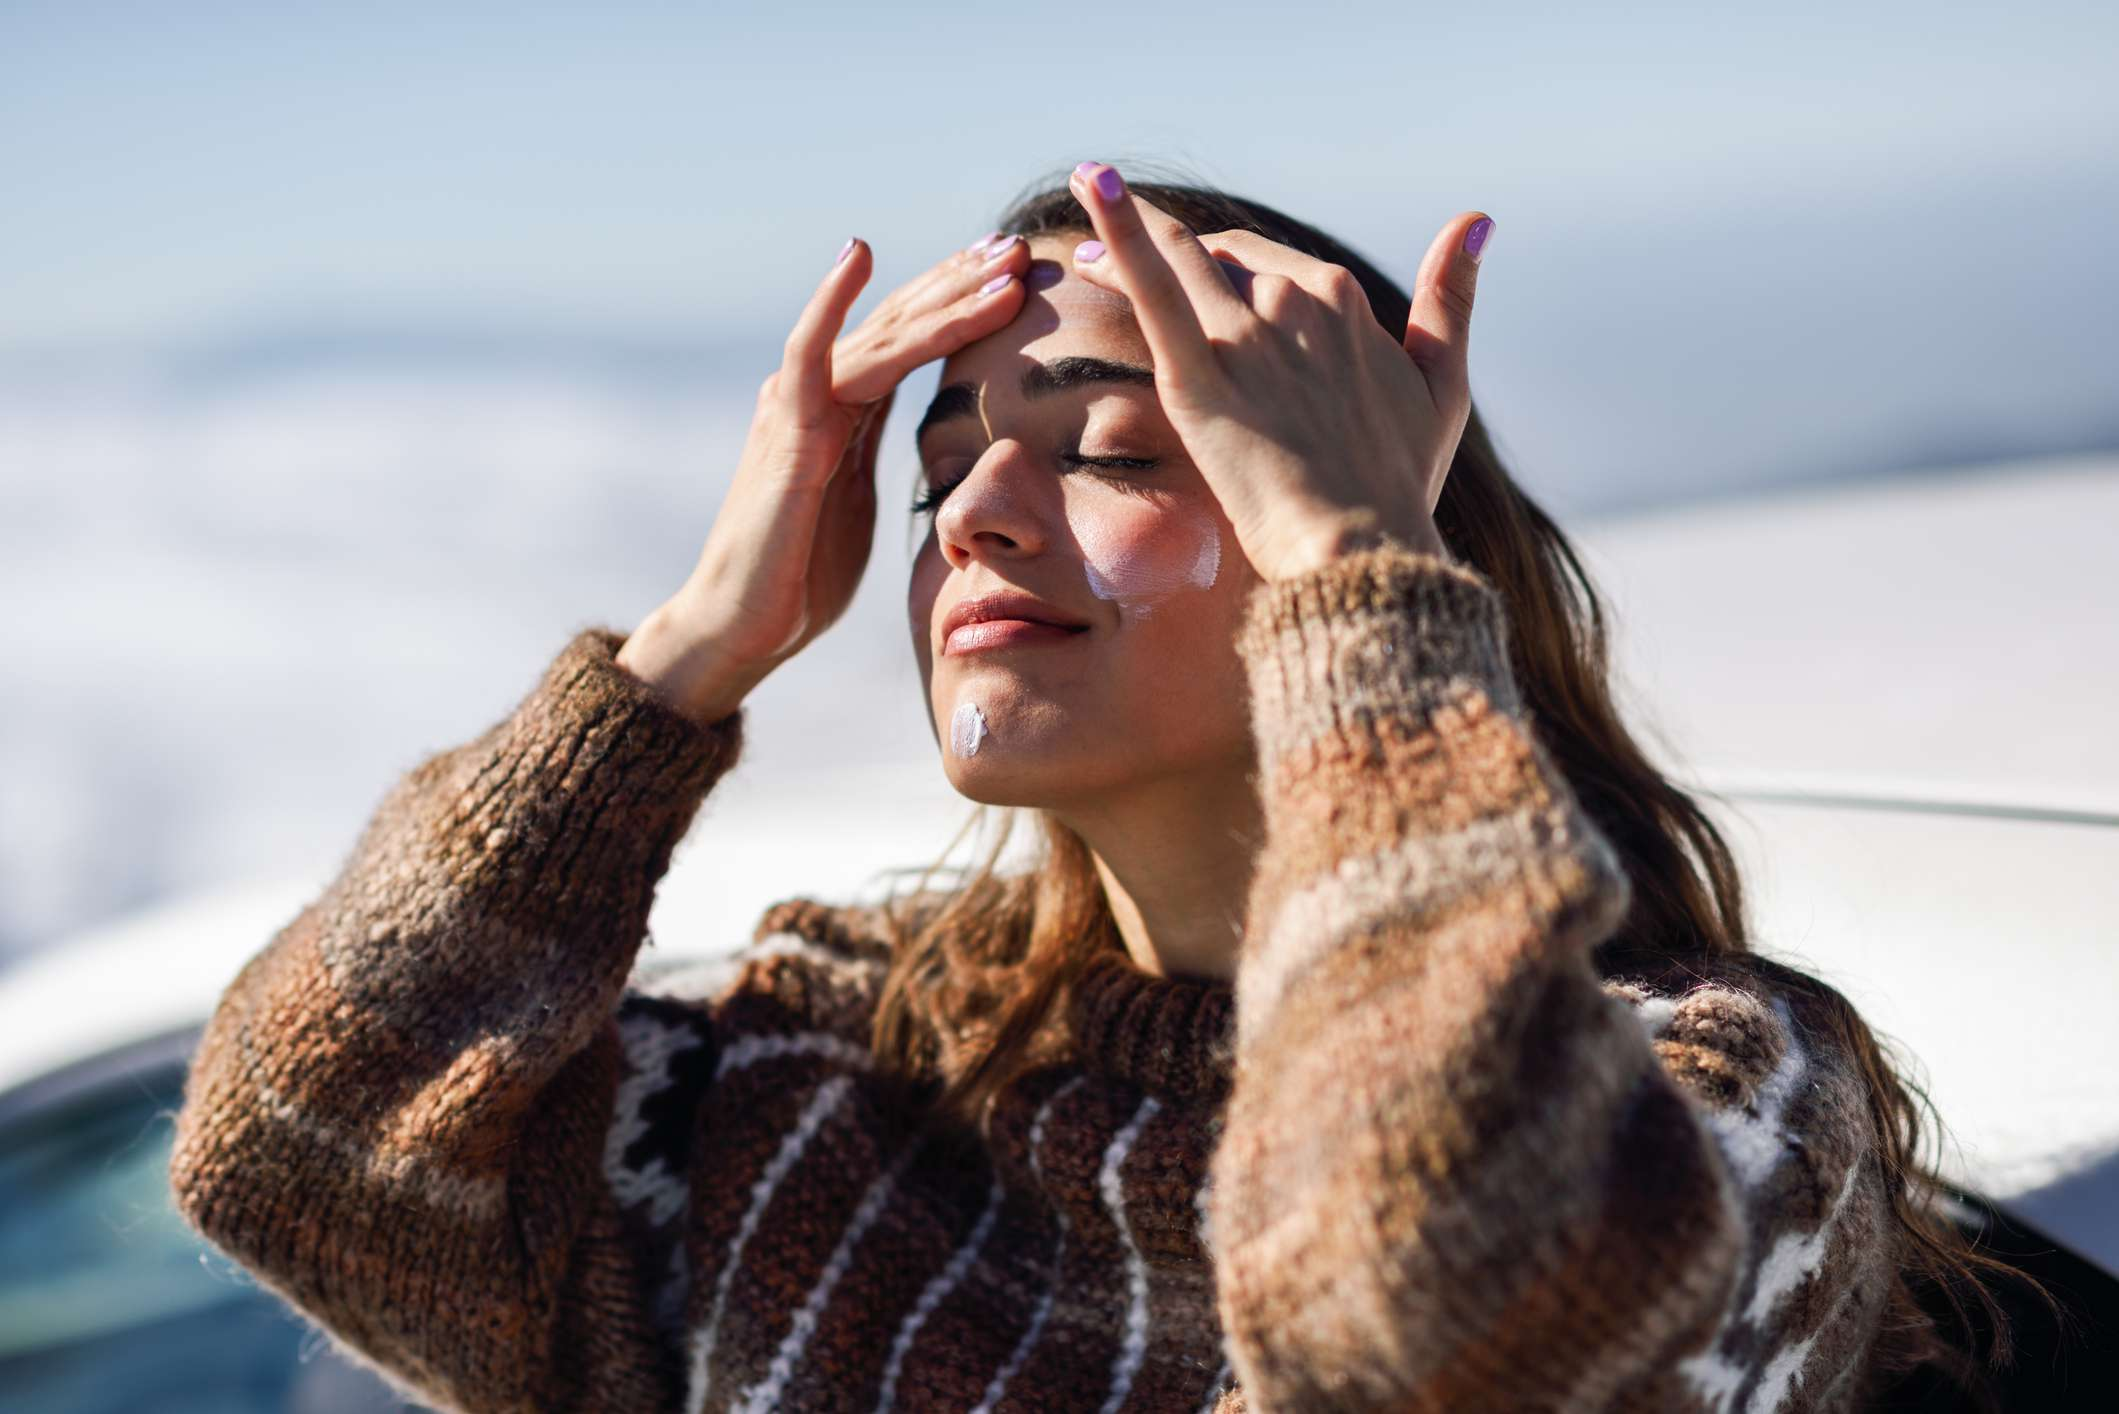 A woman applying sunscreen to her face outdoors.